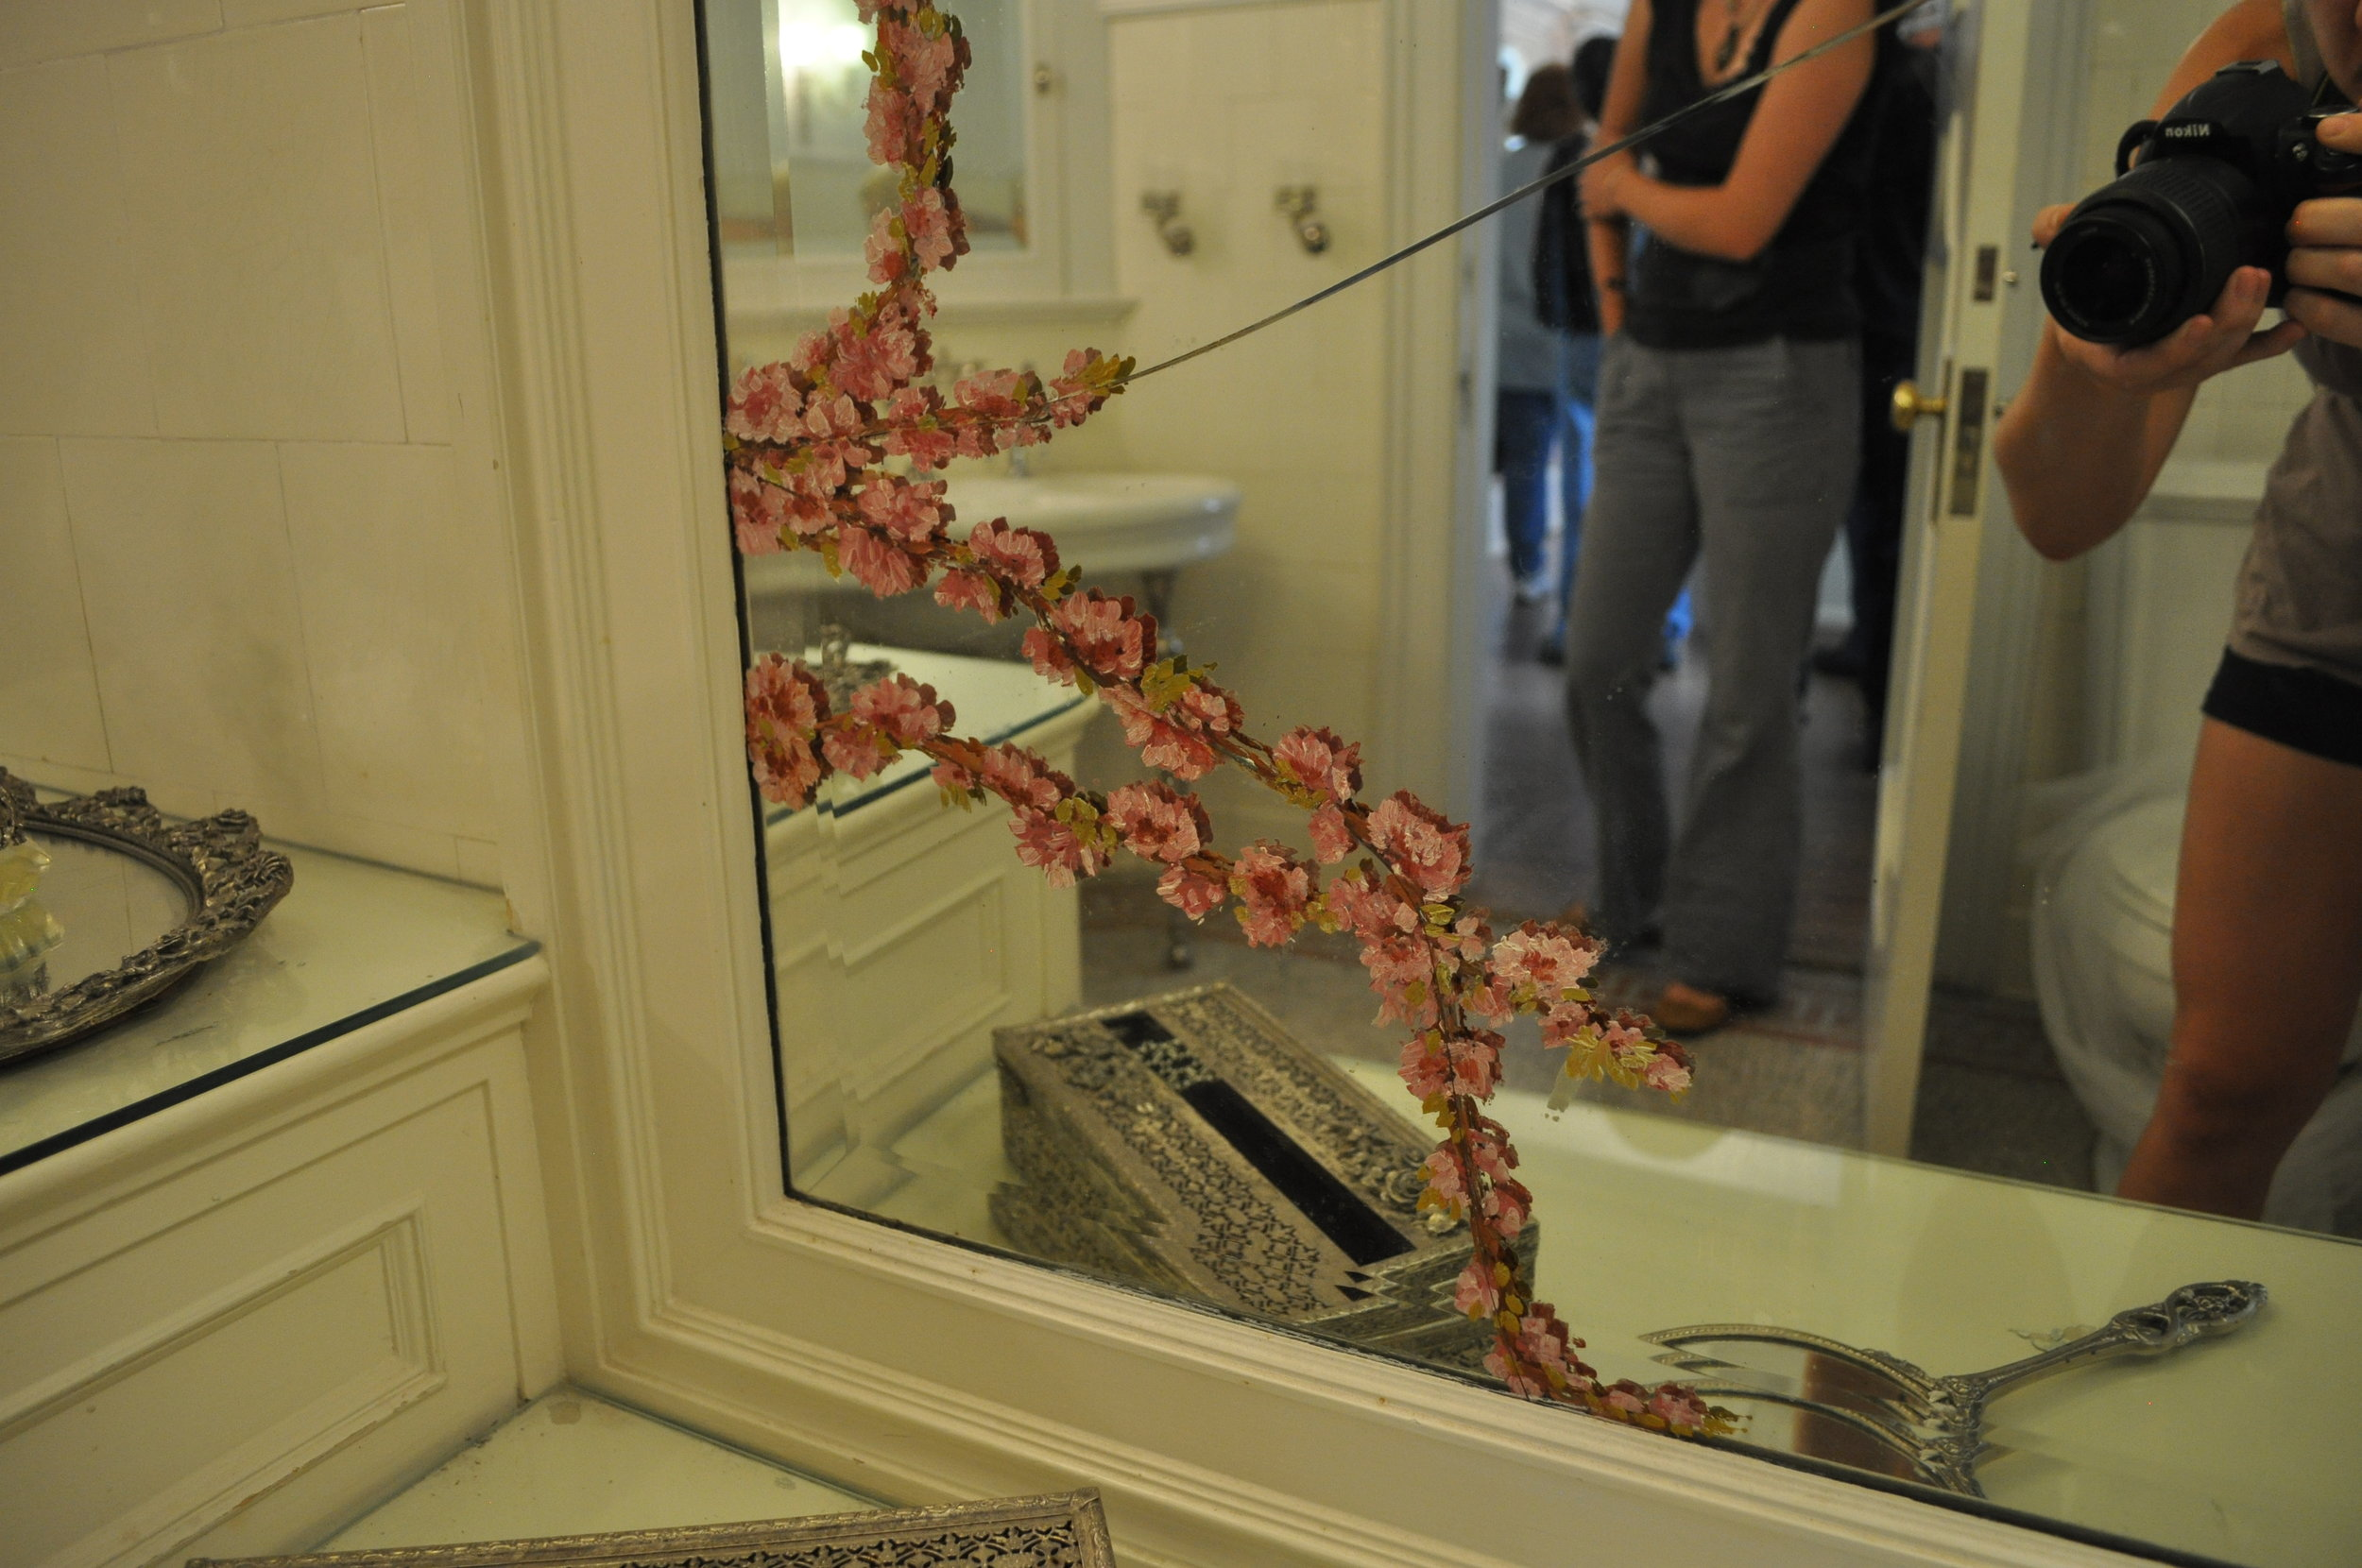 Osgood's wife, referred to as 'Lady Bountiful', hired a painter from Europe to paint this floral detail to conceal a mirror crack that developed in her bathroom